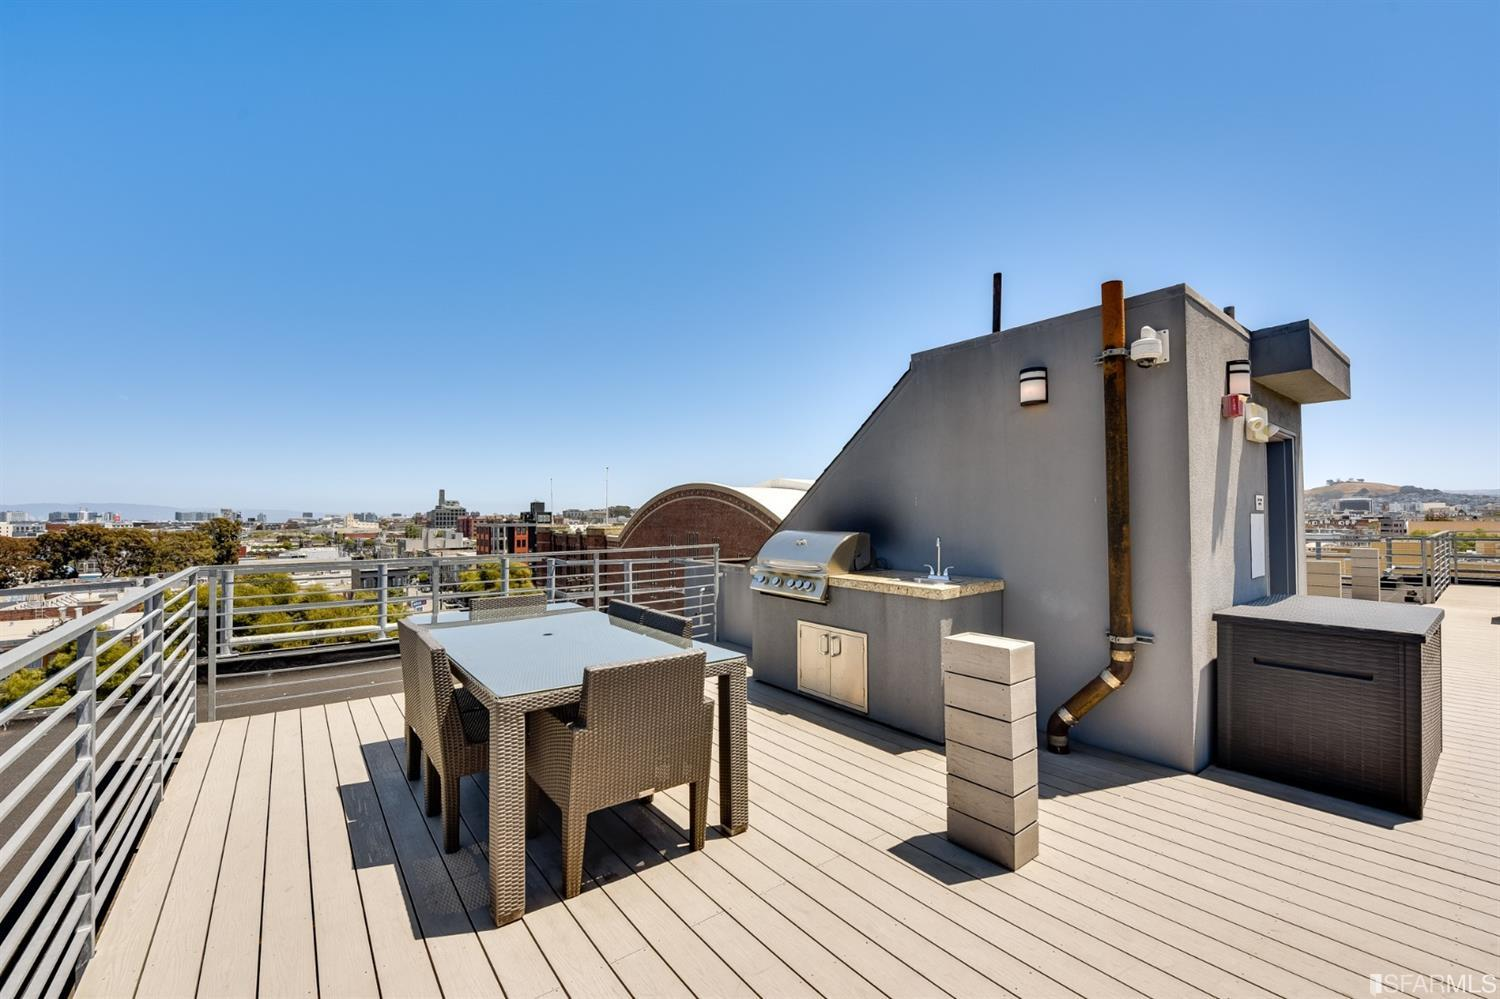 Photo #10: Shared roof deck with BBQ